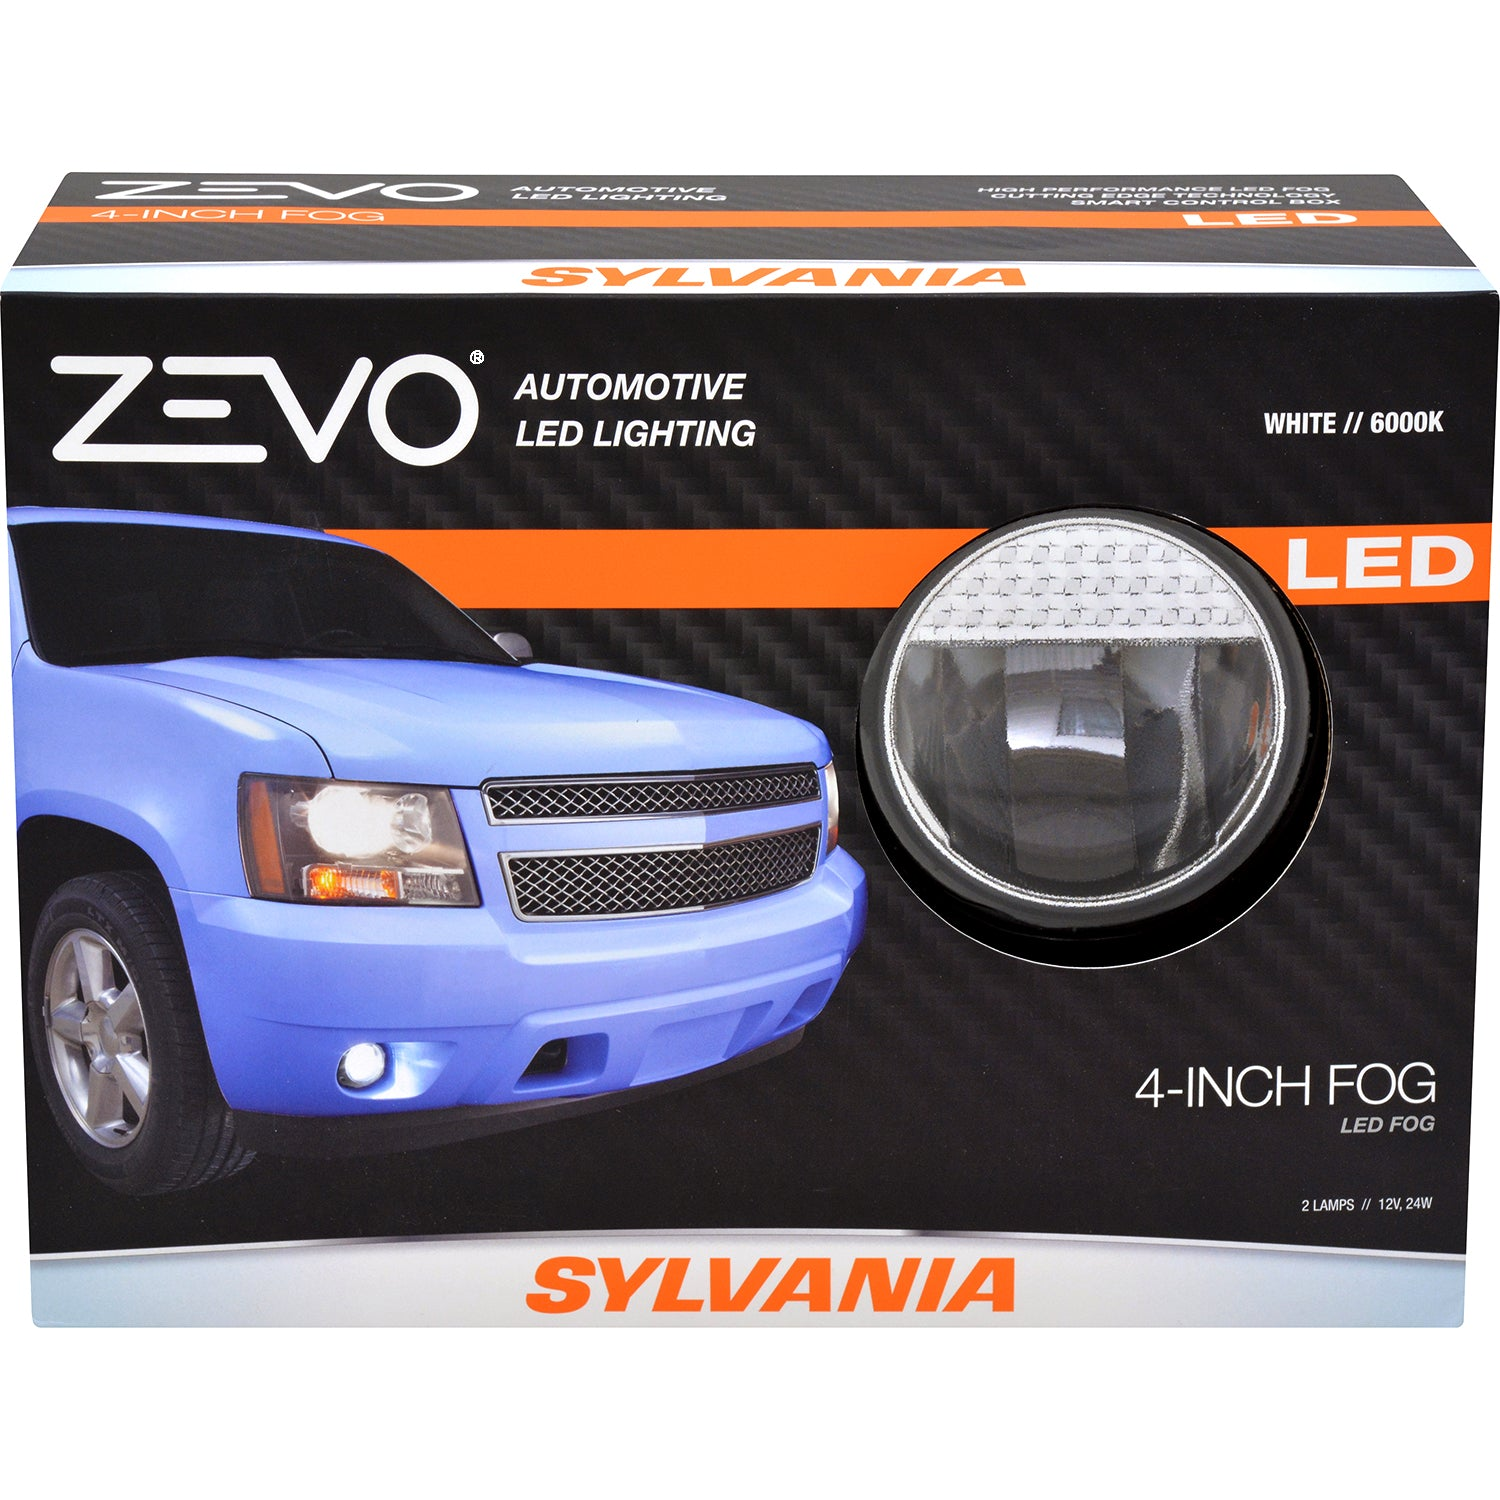 "SYLVANIA Zevo 4"" Round LED Fog Automotive Light"